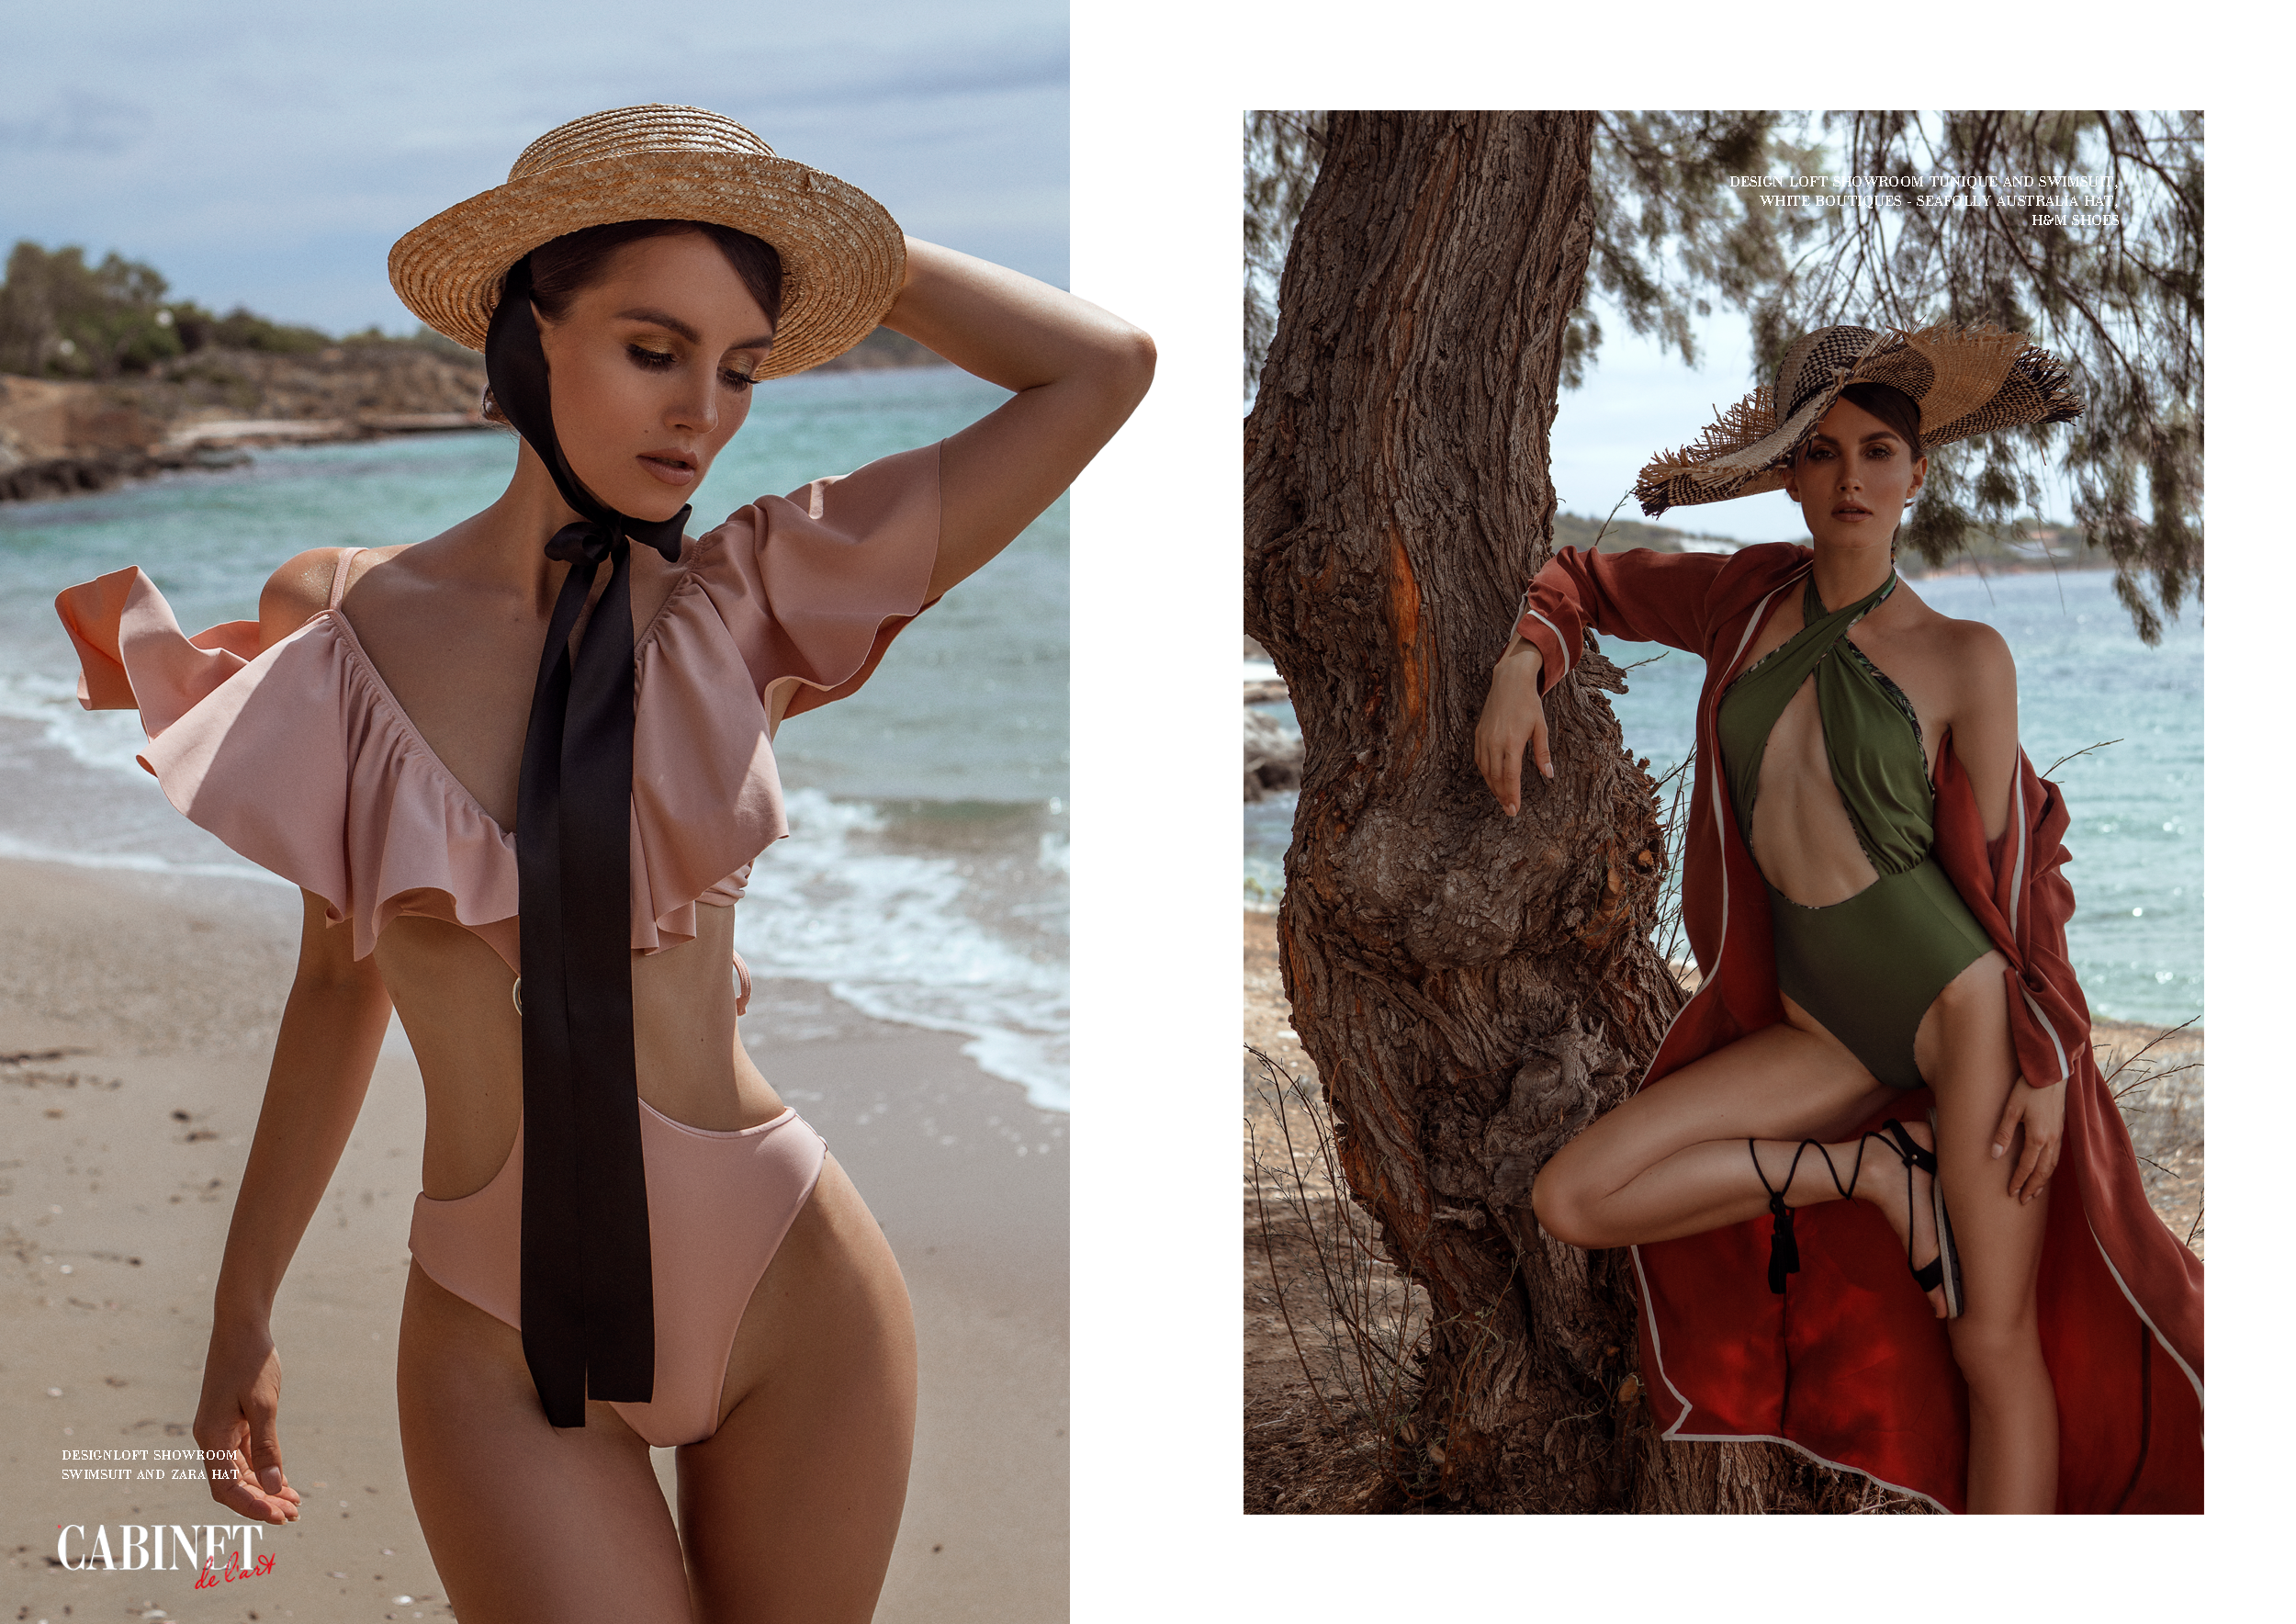 Слева:Designloft showroom swimsuit and zara hat ;Справа:Design loft showroom tunique and swimsuit, white boutiques - Seafolly Australia hat, H&M shoes